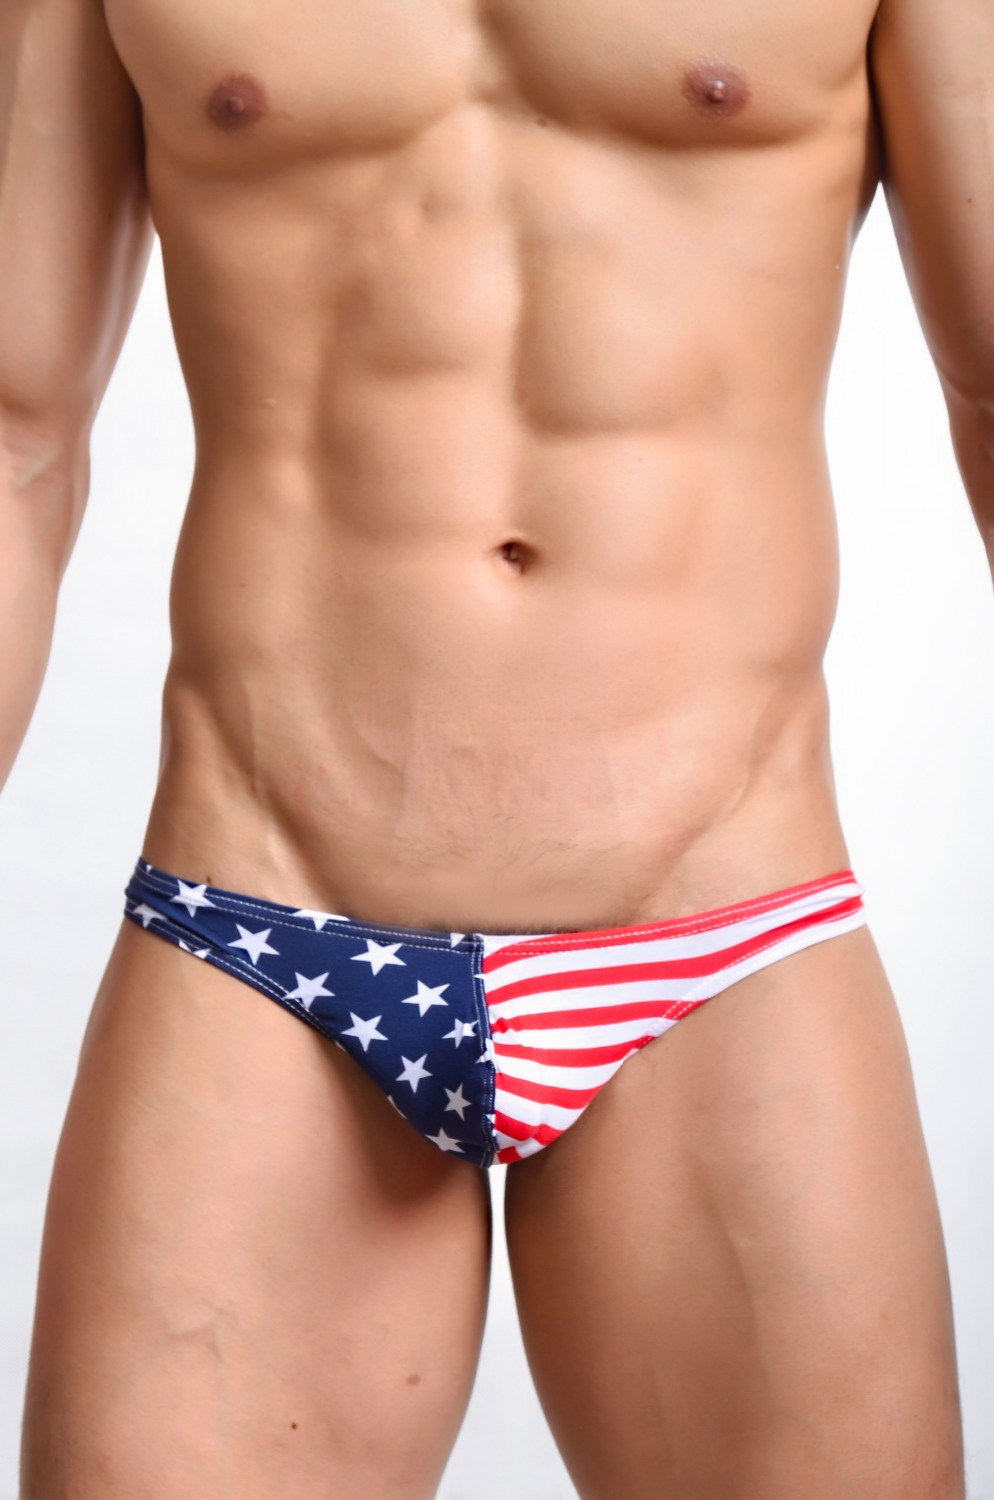 New Sexy Men Stripe Low Rise Thongs Men Sexy G-Strings & Thongs Underwear Penis Pouch Gay Lingerie USA Flag FX1008